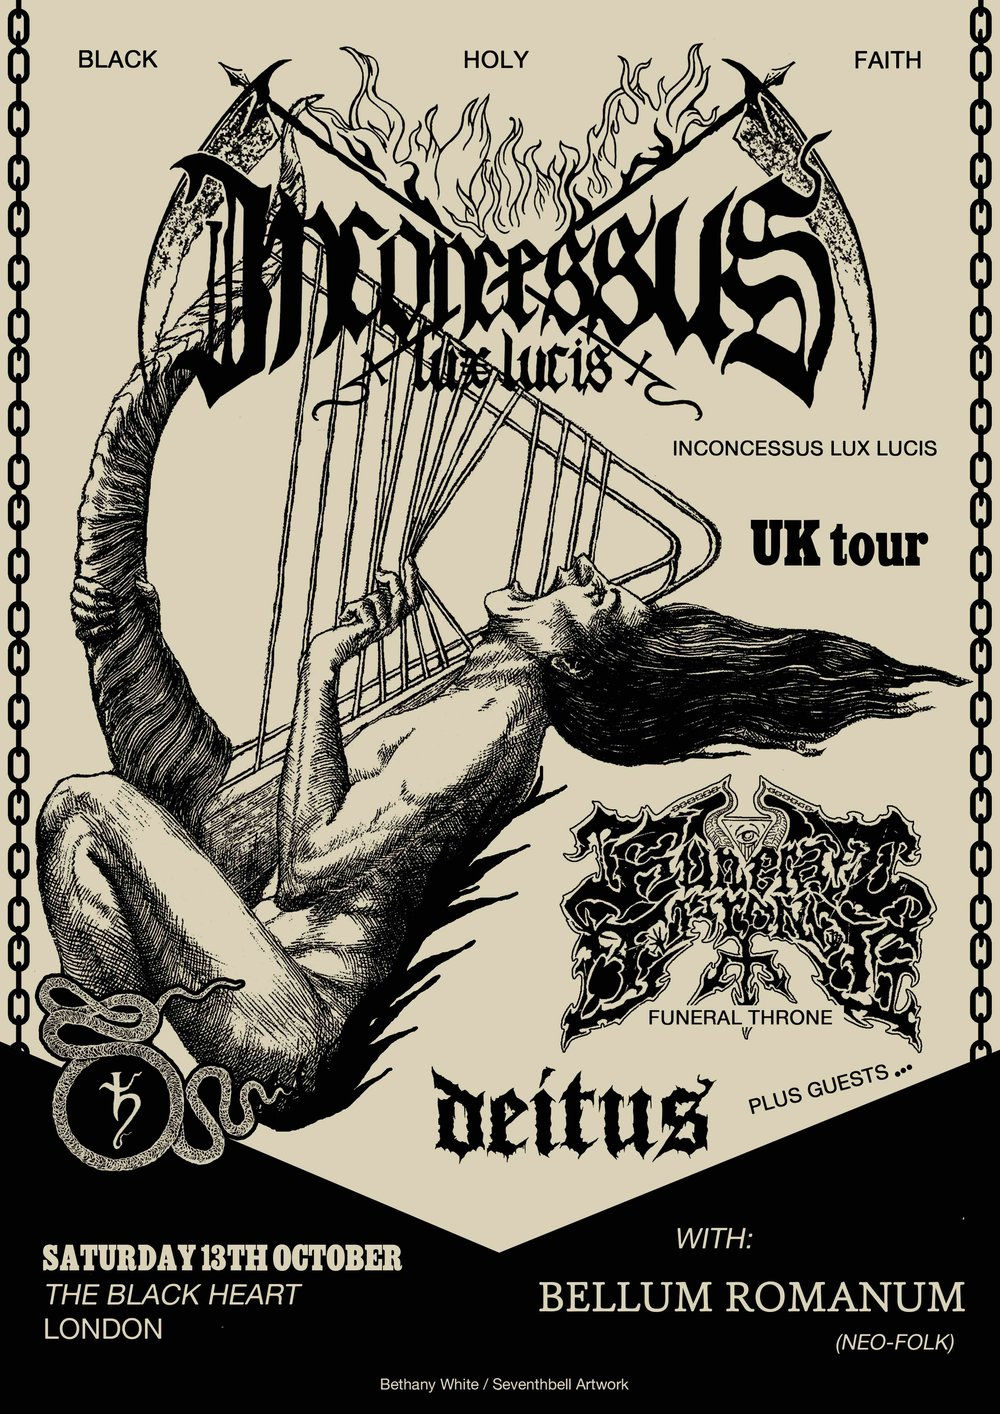 Inconcessus_lux_lucis_gig_flyer..jpg